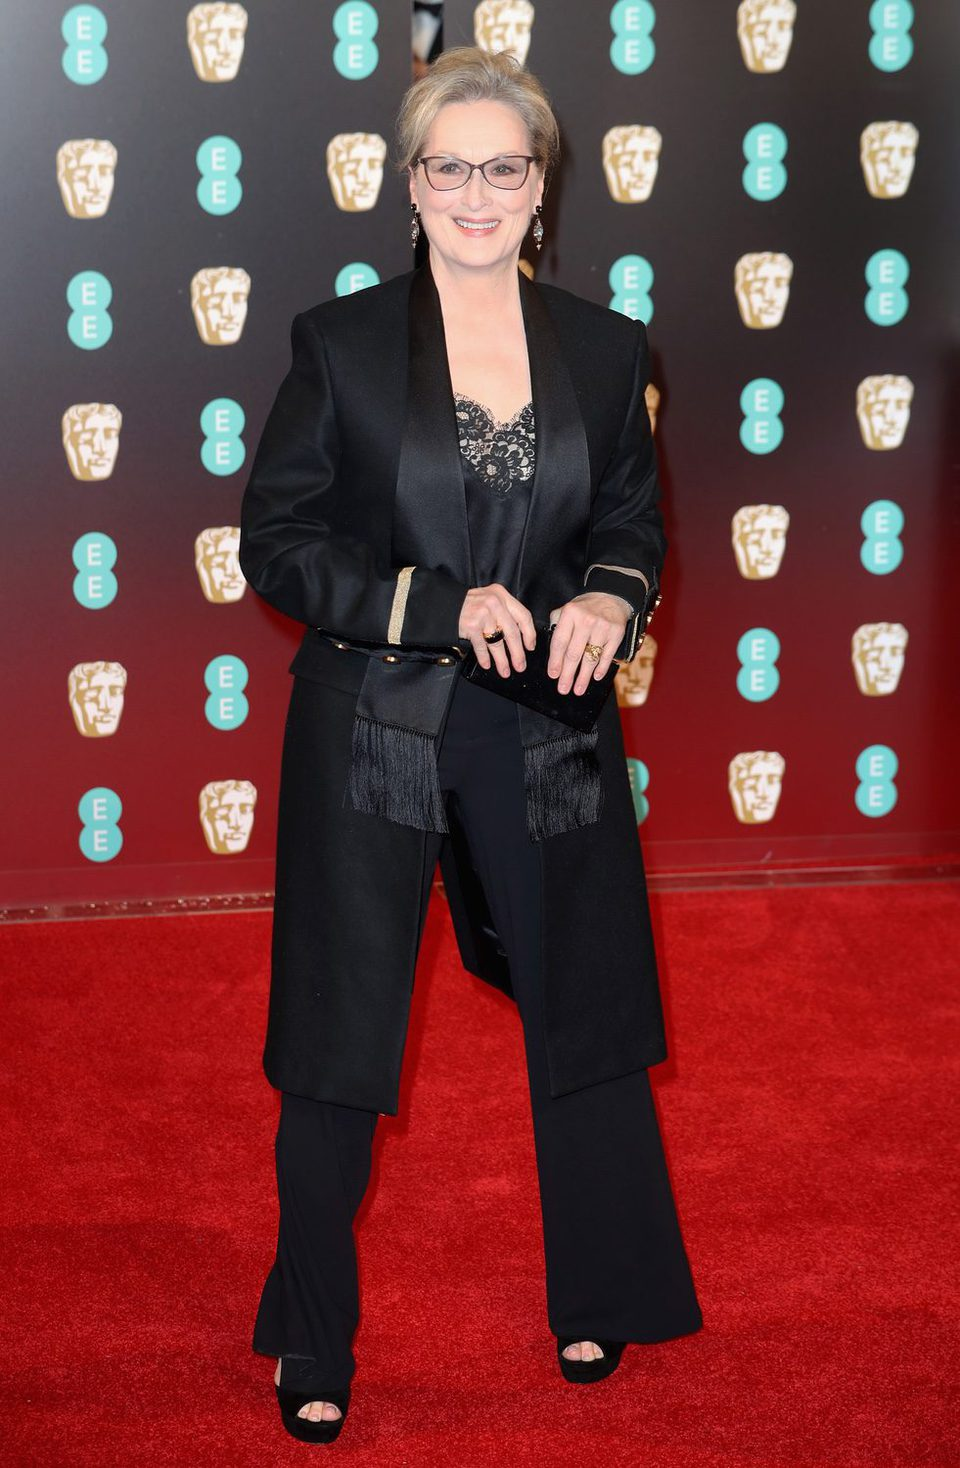 Meryl Sreep at the red carpet of the BAFTA 2017